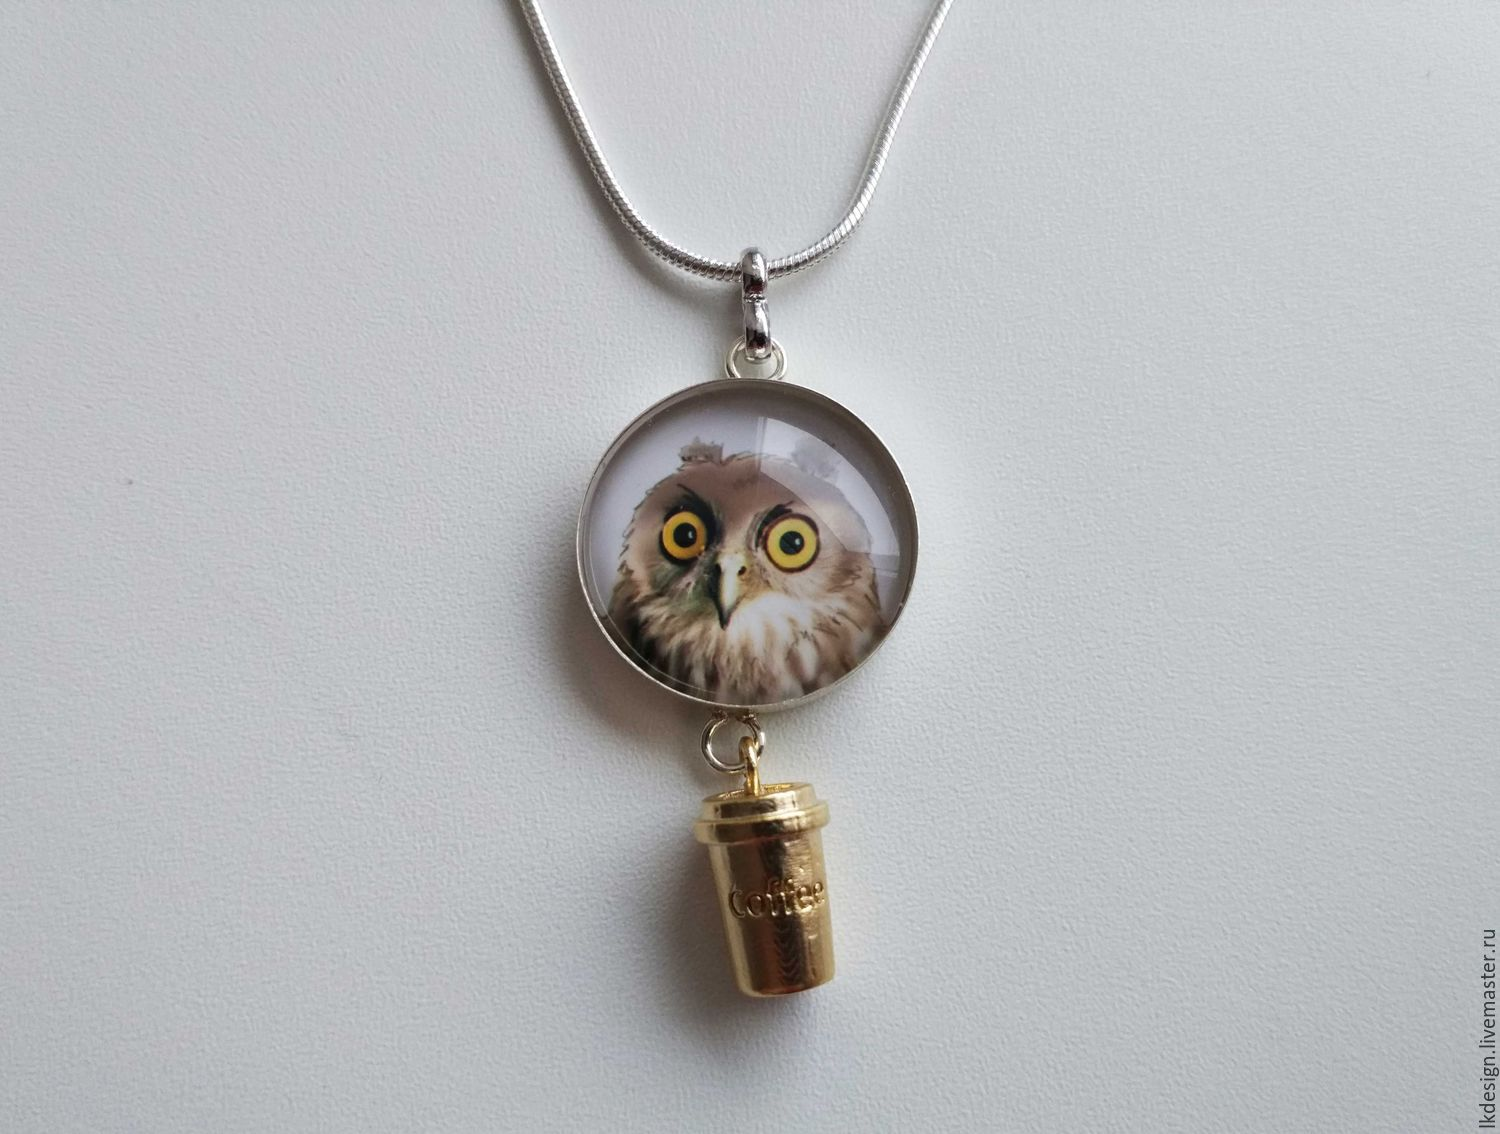 Owl pendant with coffee Cup, Pendants, Moscow,  Фото №1